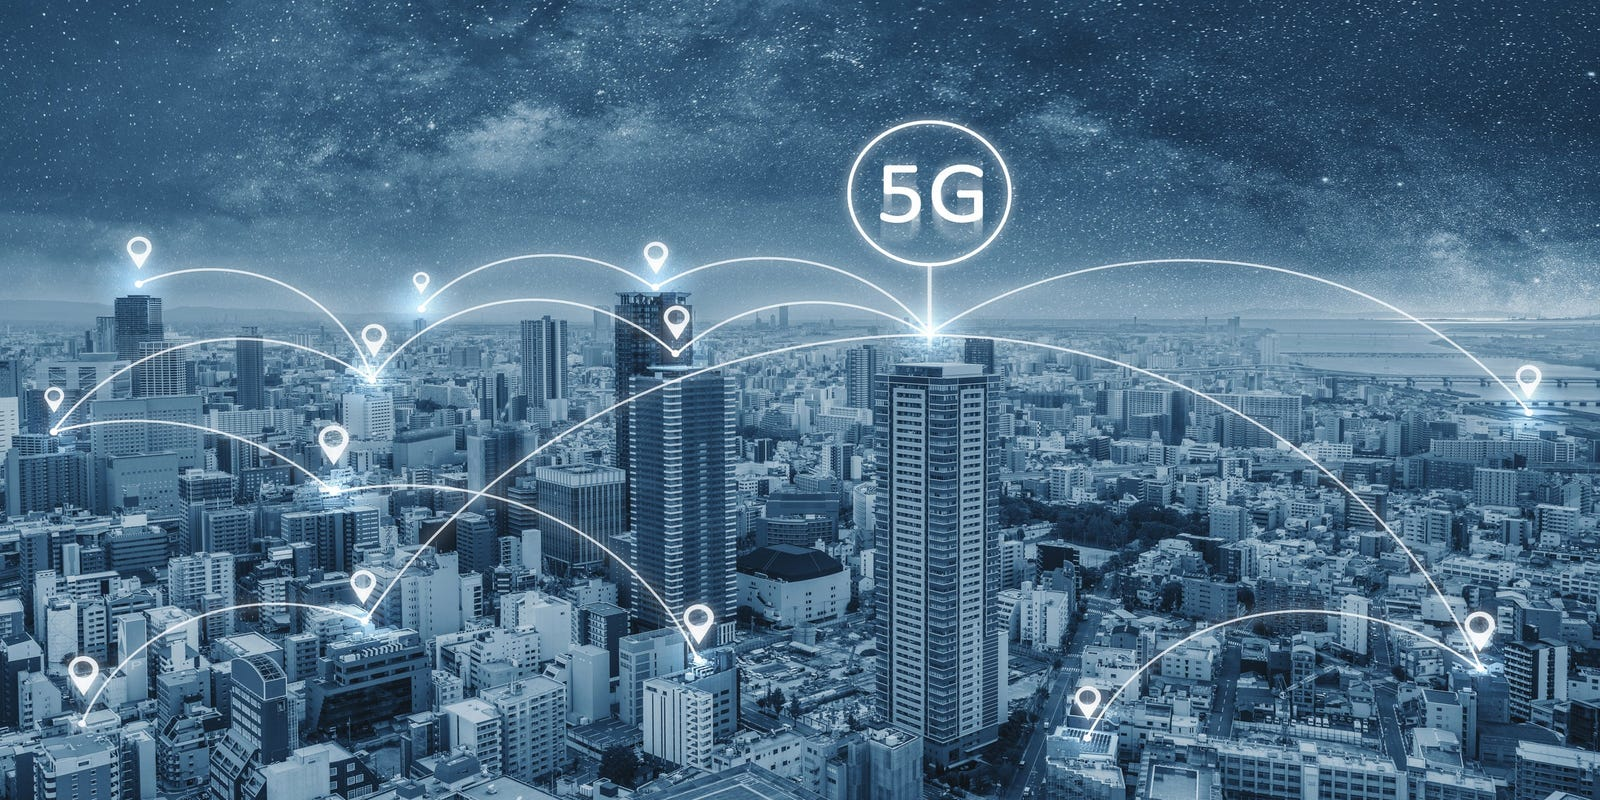 Here's why 5G and coronavirus are not connected